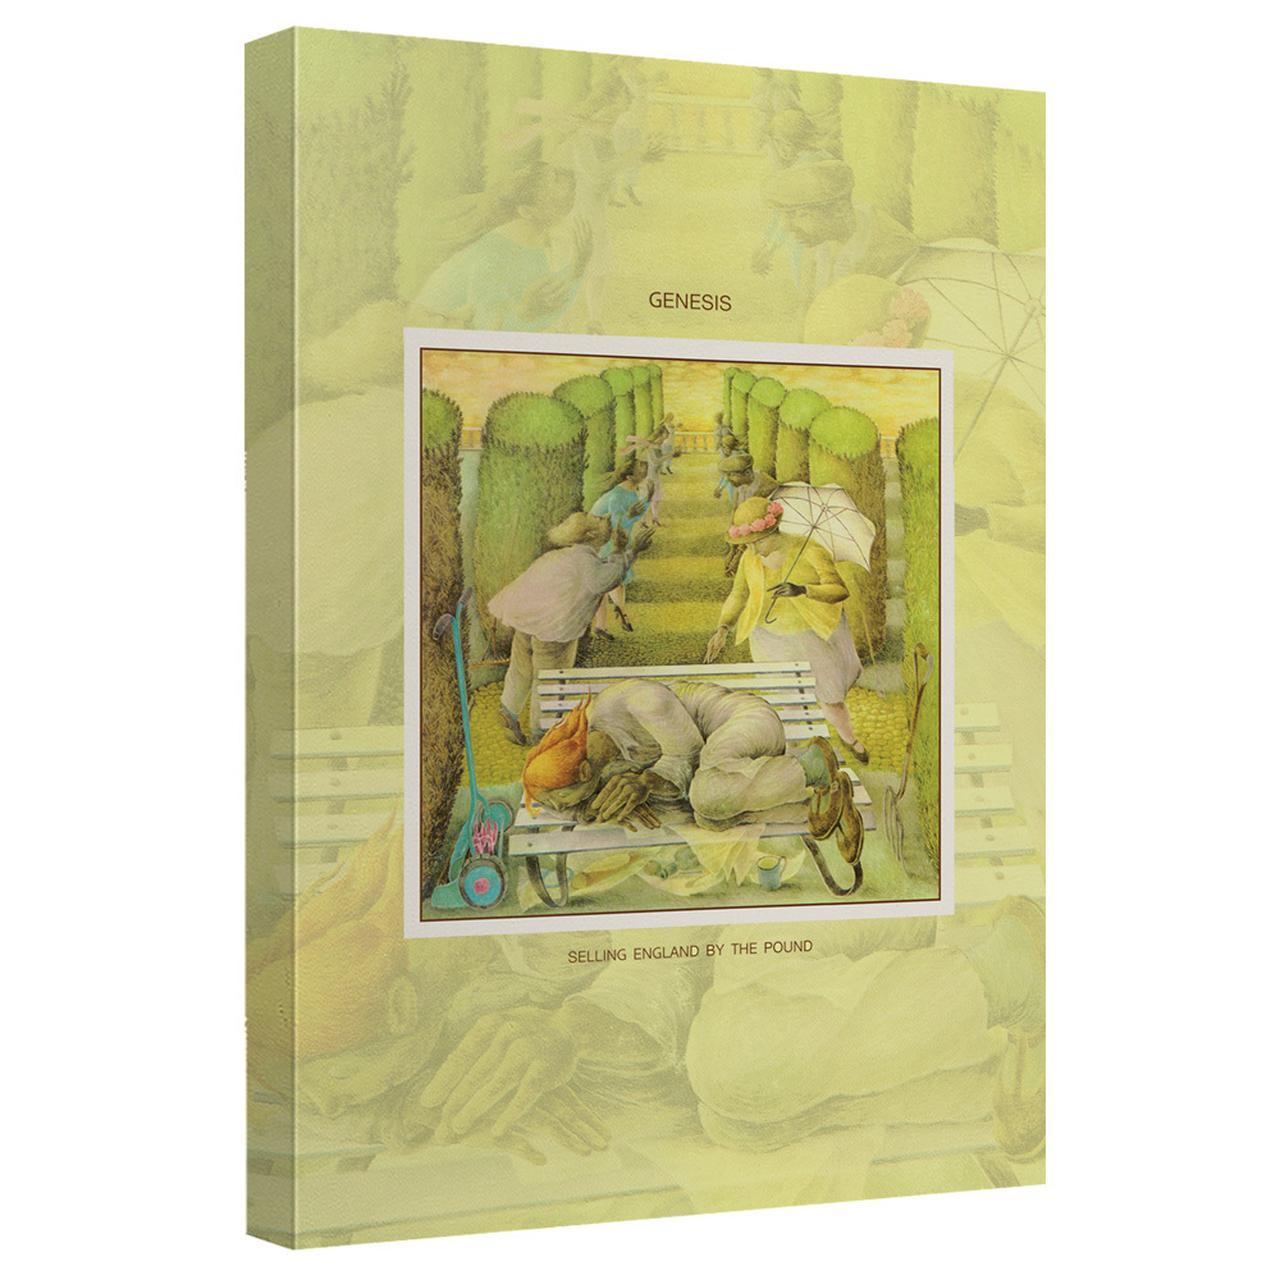 Genesis/Selling England By The Pound-Canvas Wall Art With Back Board ...